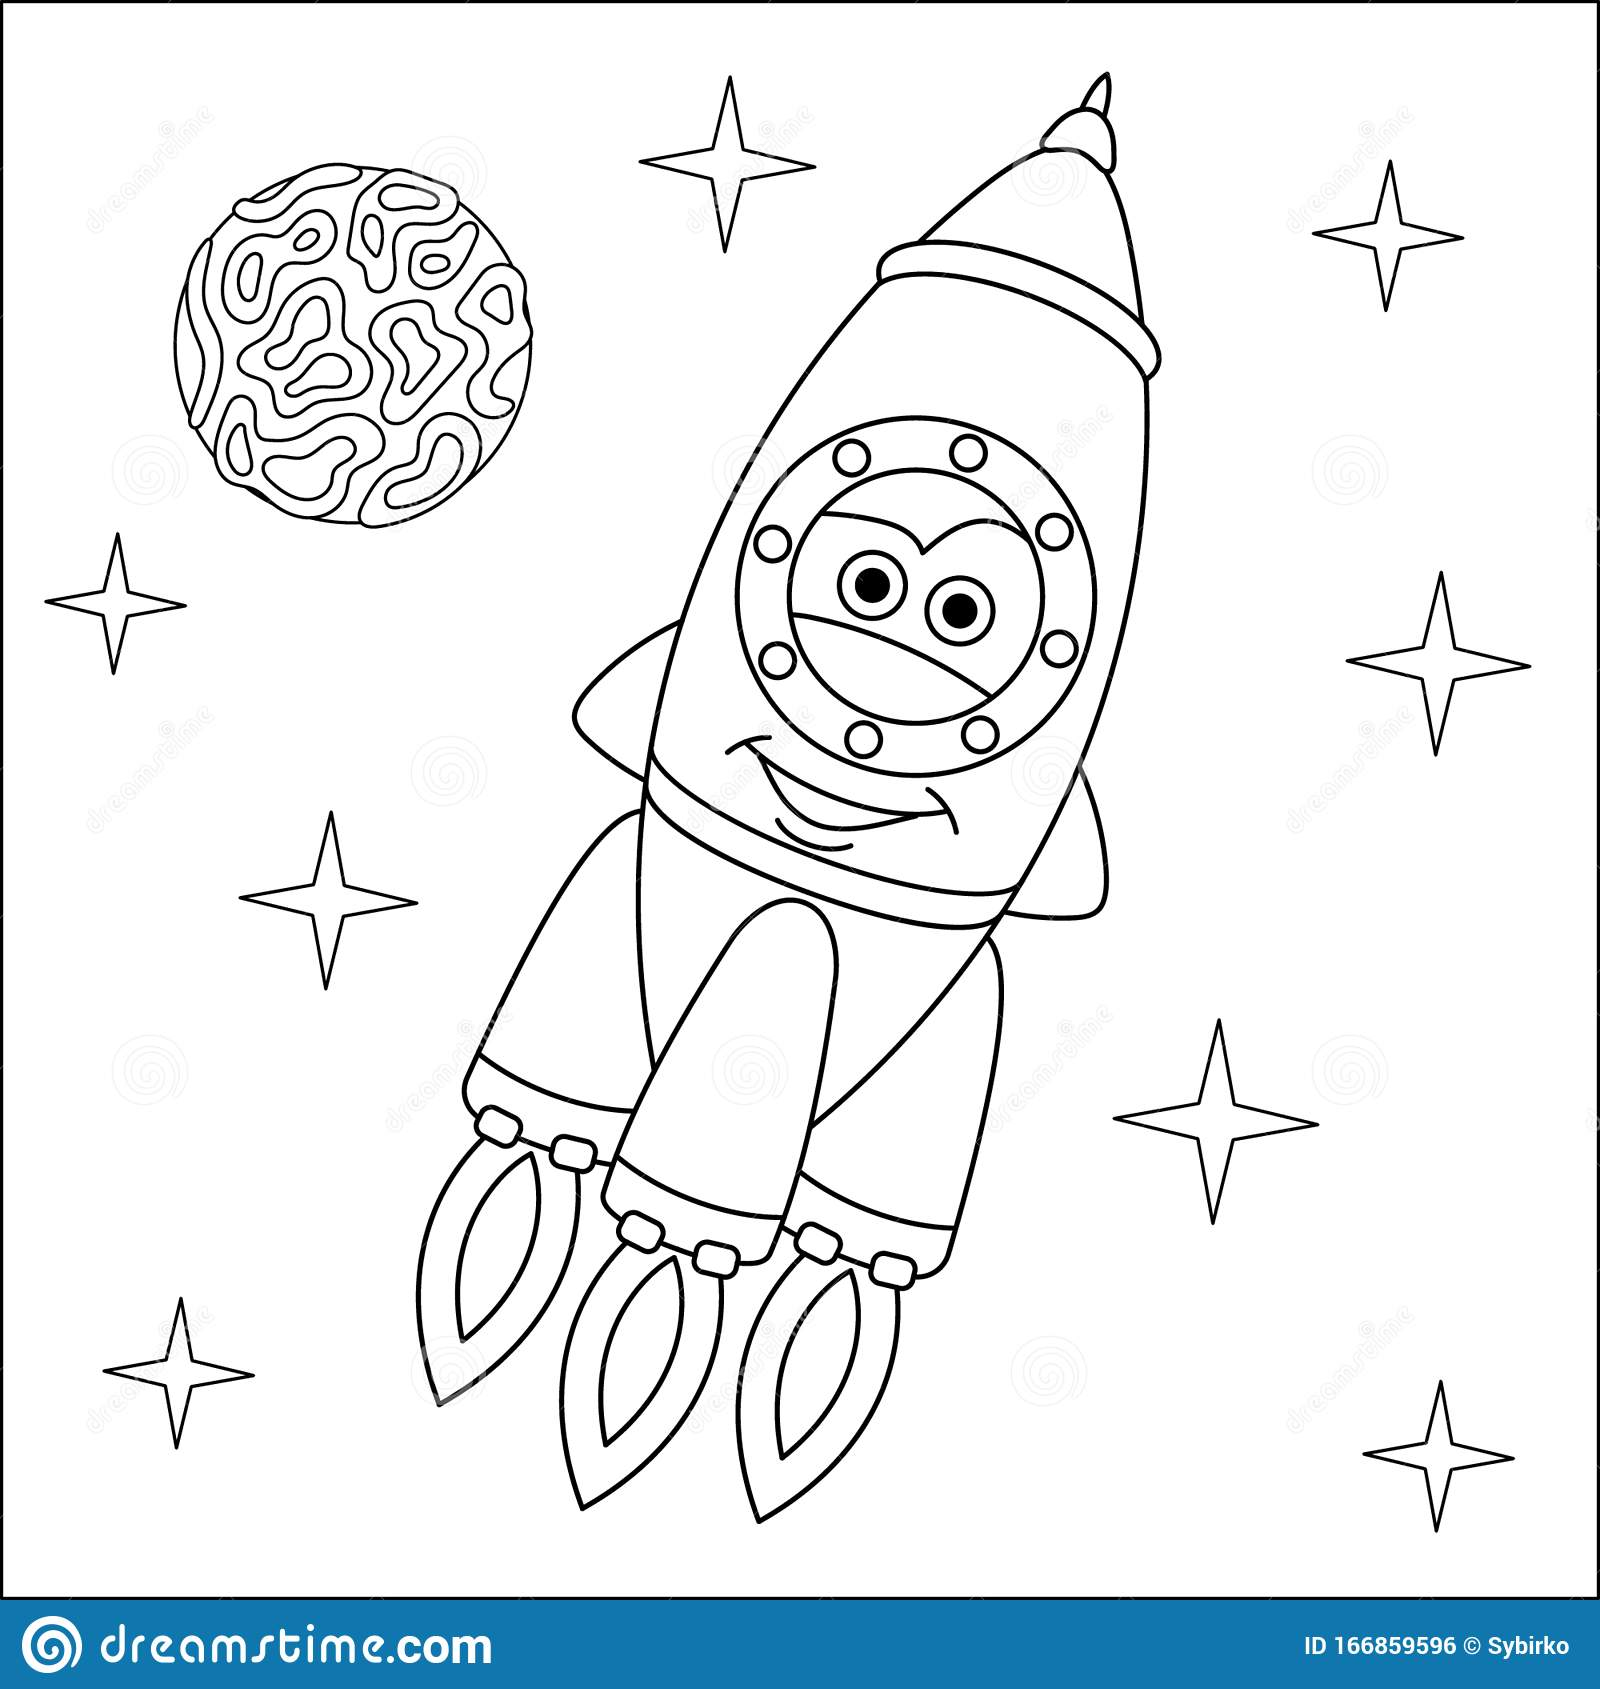 Coloring Page With Rocket Ship Stock Vector